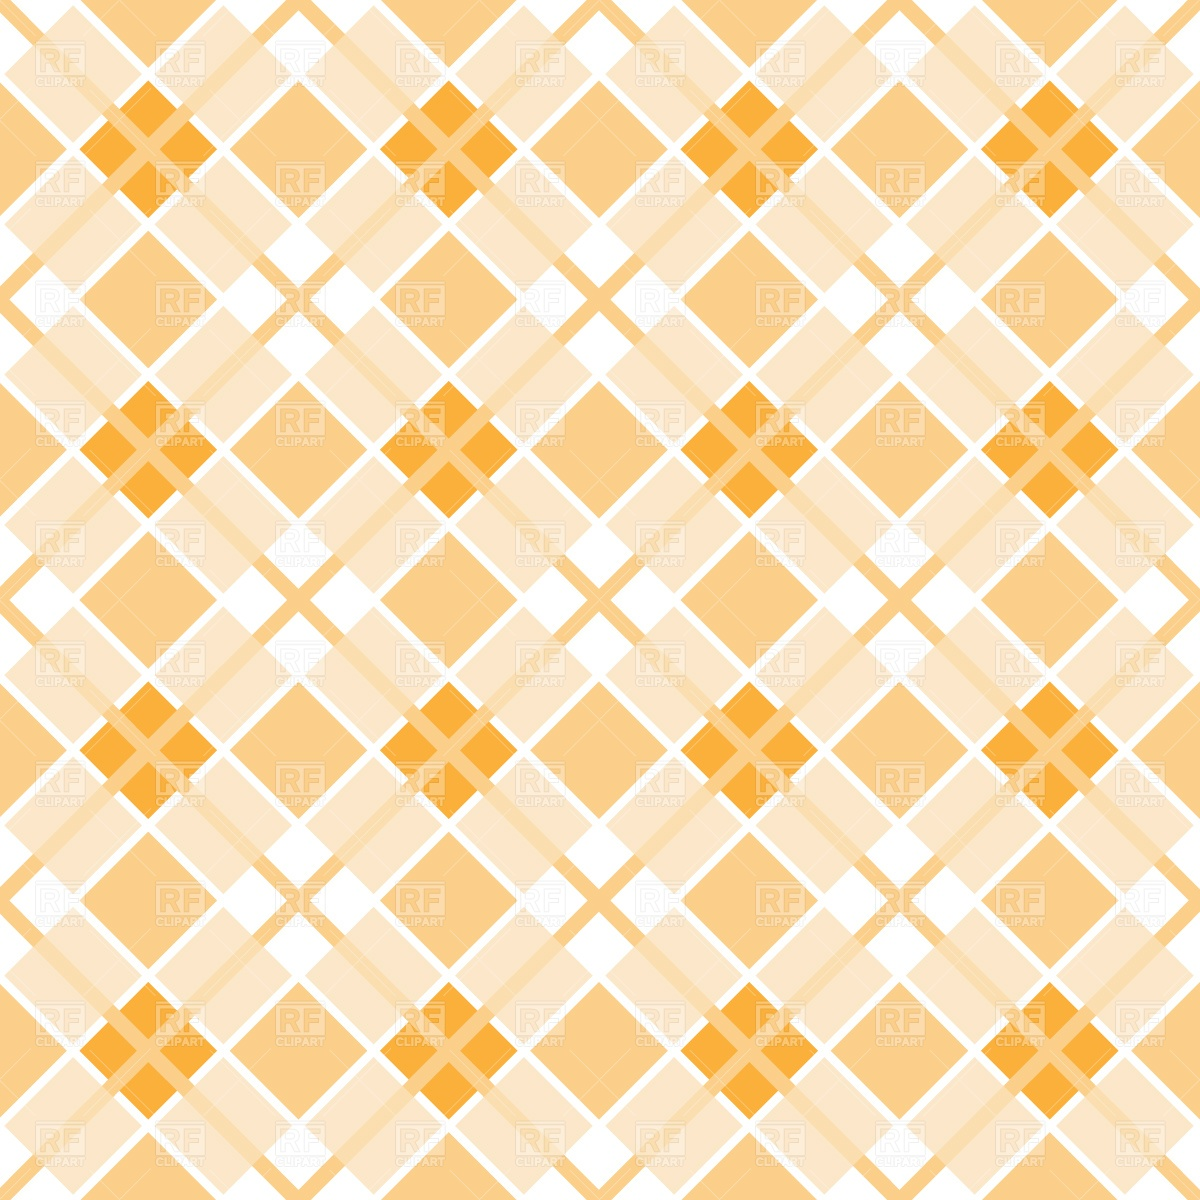 Plaid background Vector Image #818.